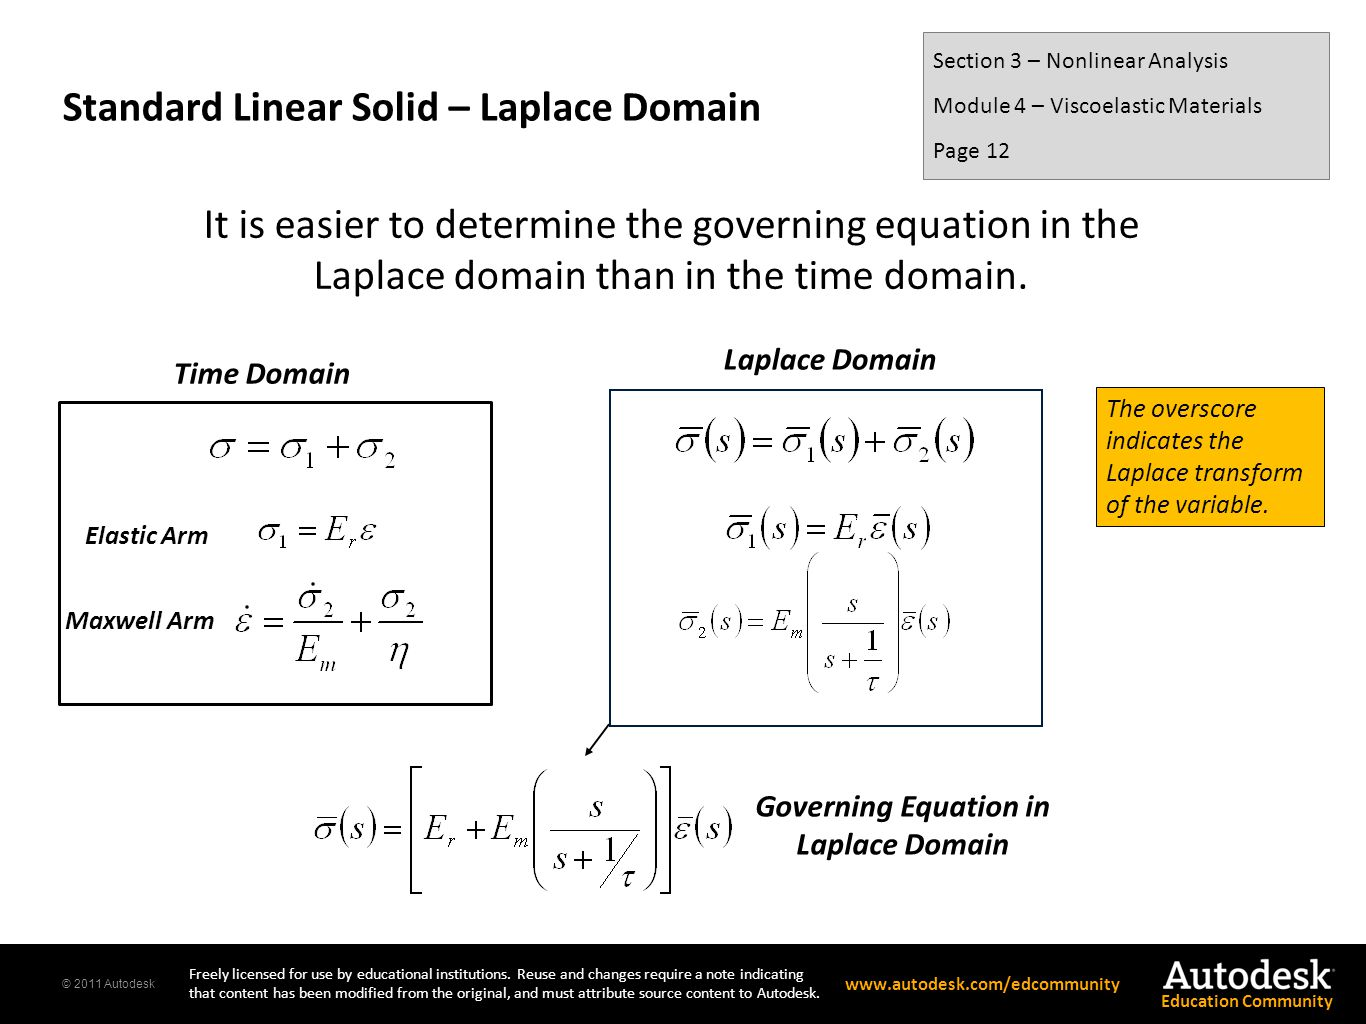 Standard Linear Solid – Laplace Domain